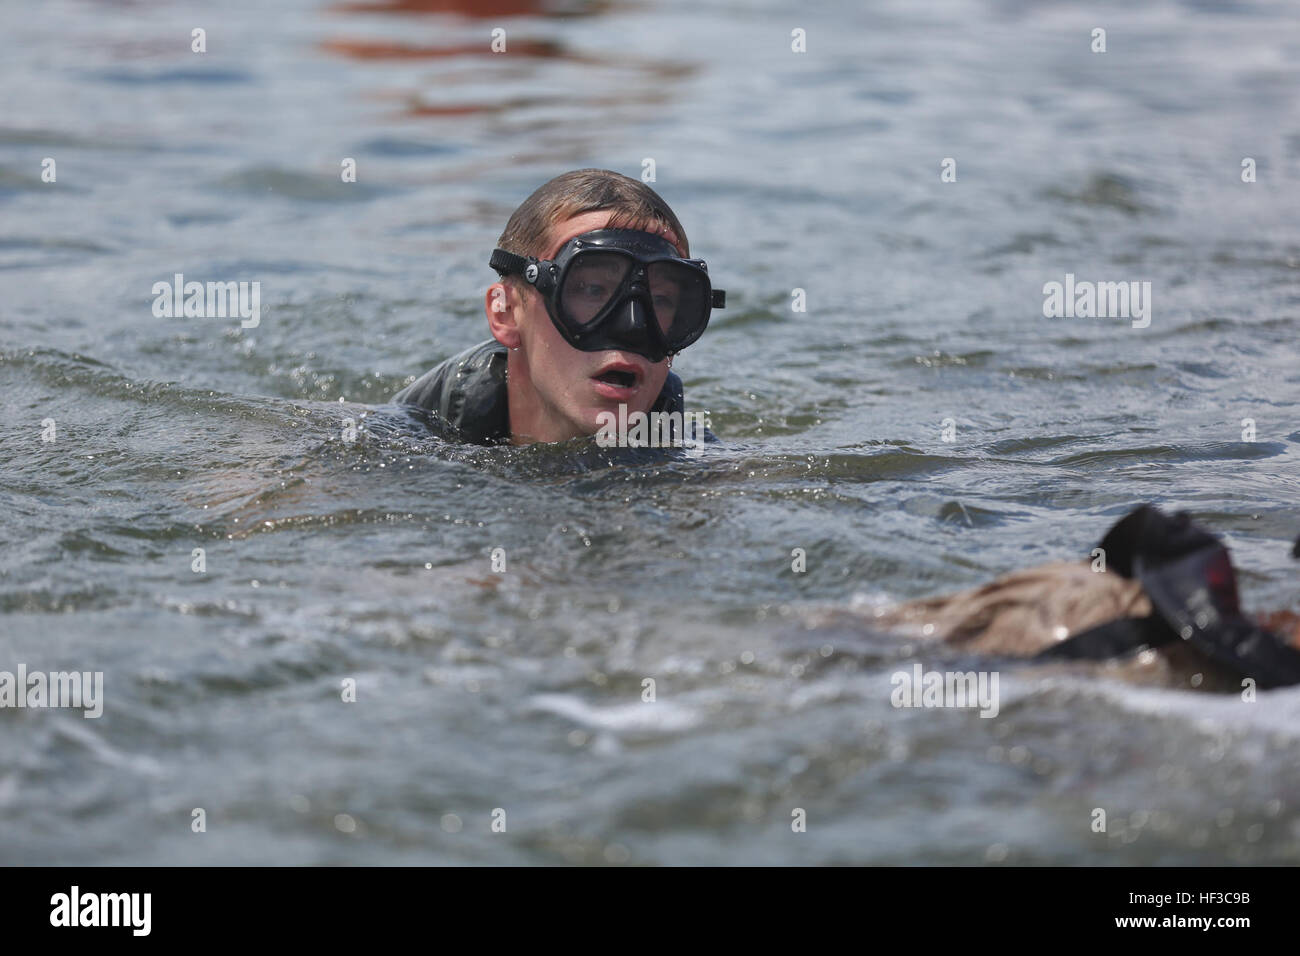 f3fa9be804b ... Marine Division, finishes an open water swim during a final training  event known as 'The Fin' during a pre-dive course aboard Camp Lejeune,  N.C., May ...